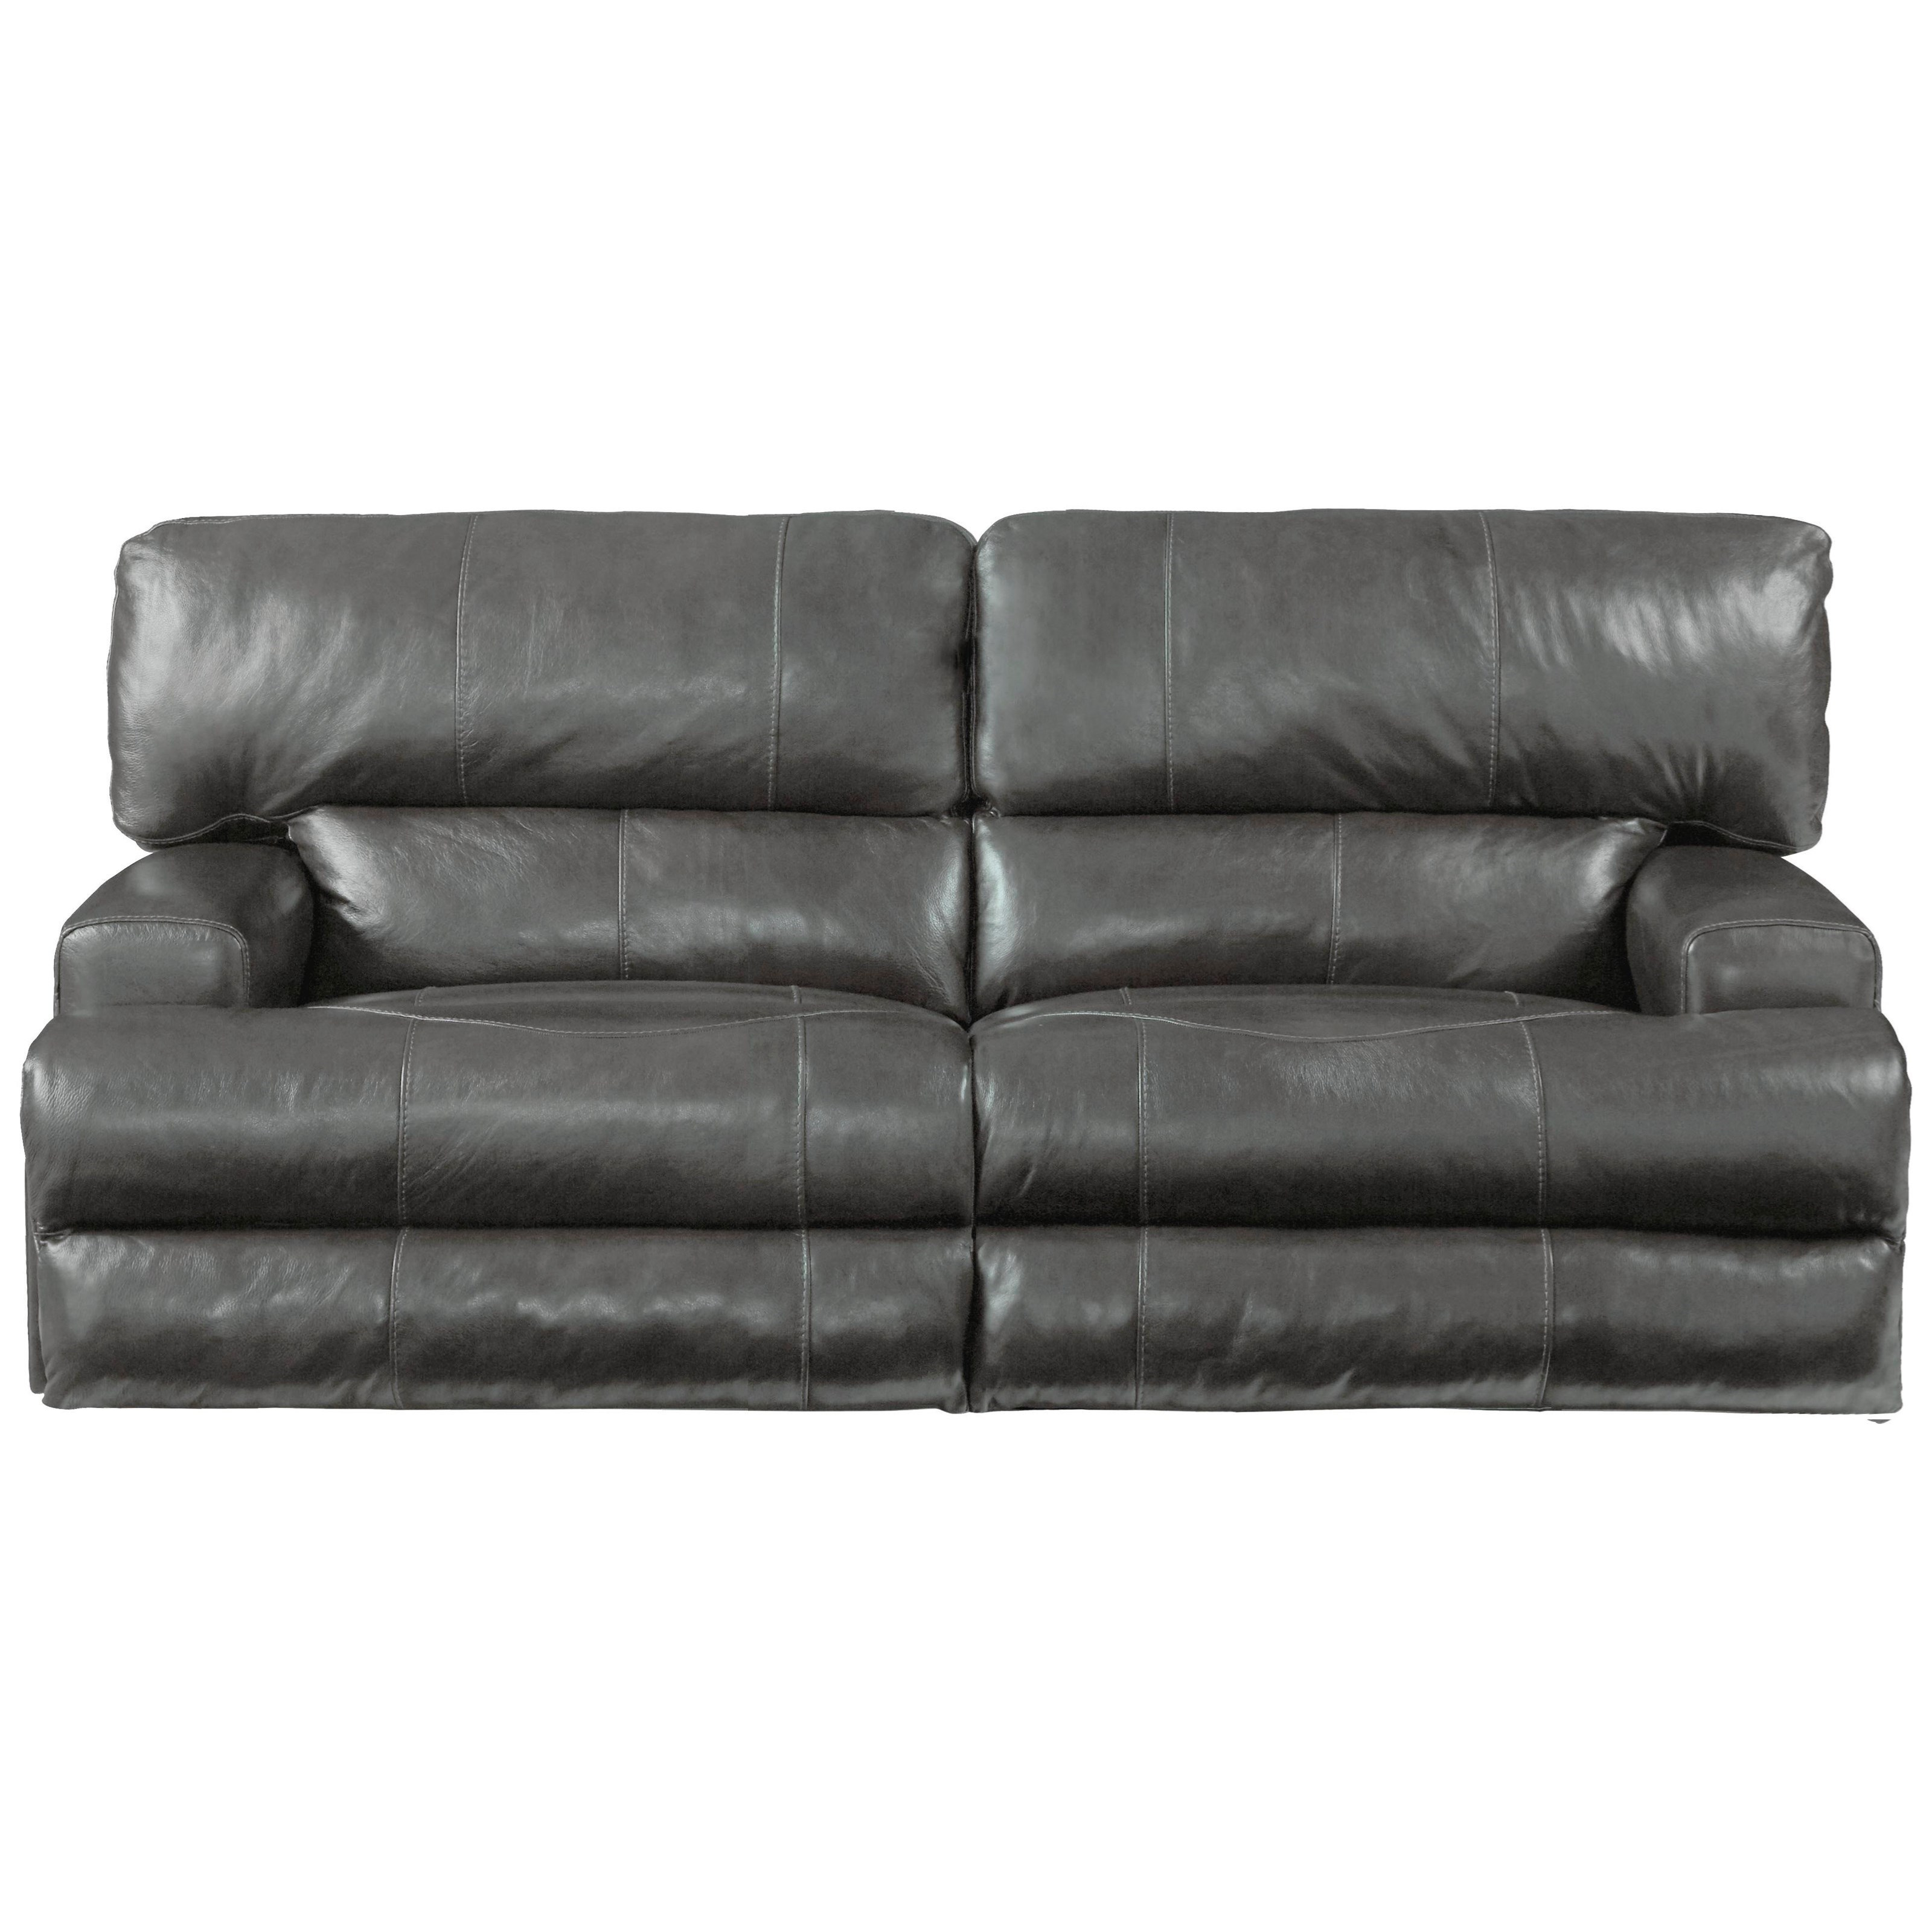 Wembley Power Lay Flat Reclining Sofa by Catnapper at Northeast Factory Direct